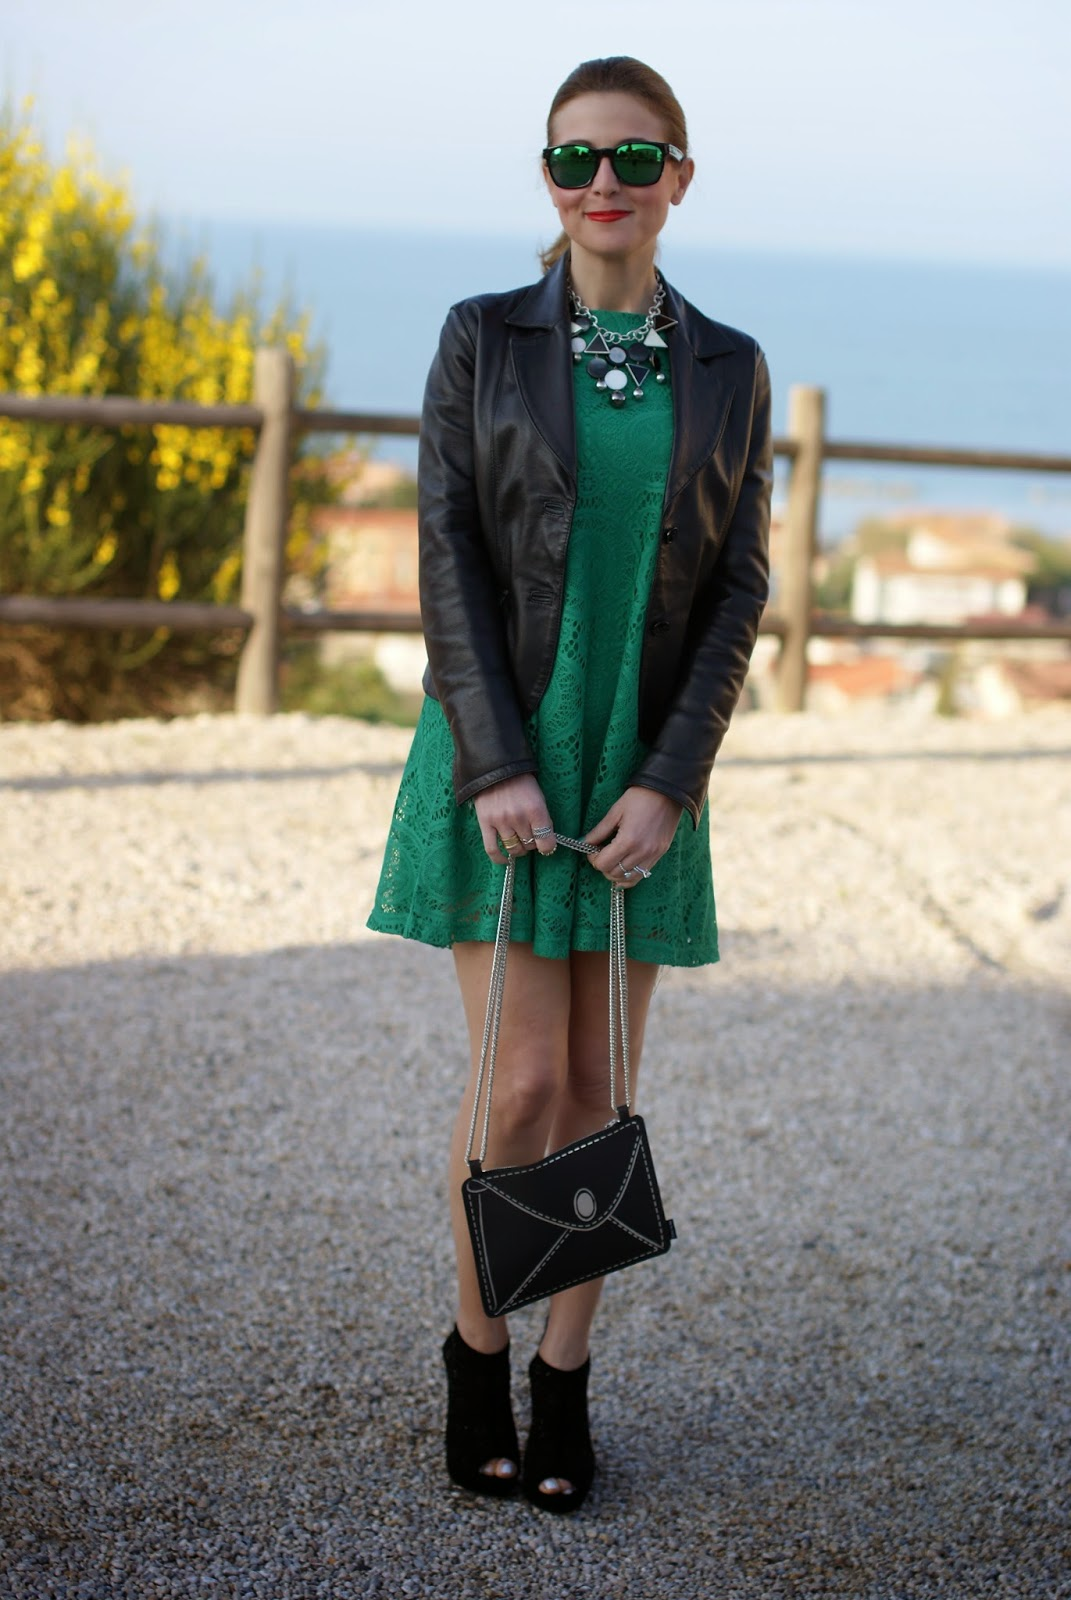 Vitti Ferria Contin jewelry, Today I'm me evening bag, millelire watch, Sheinside green lace dress, Fashion and Cookies, fashion blogger